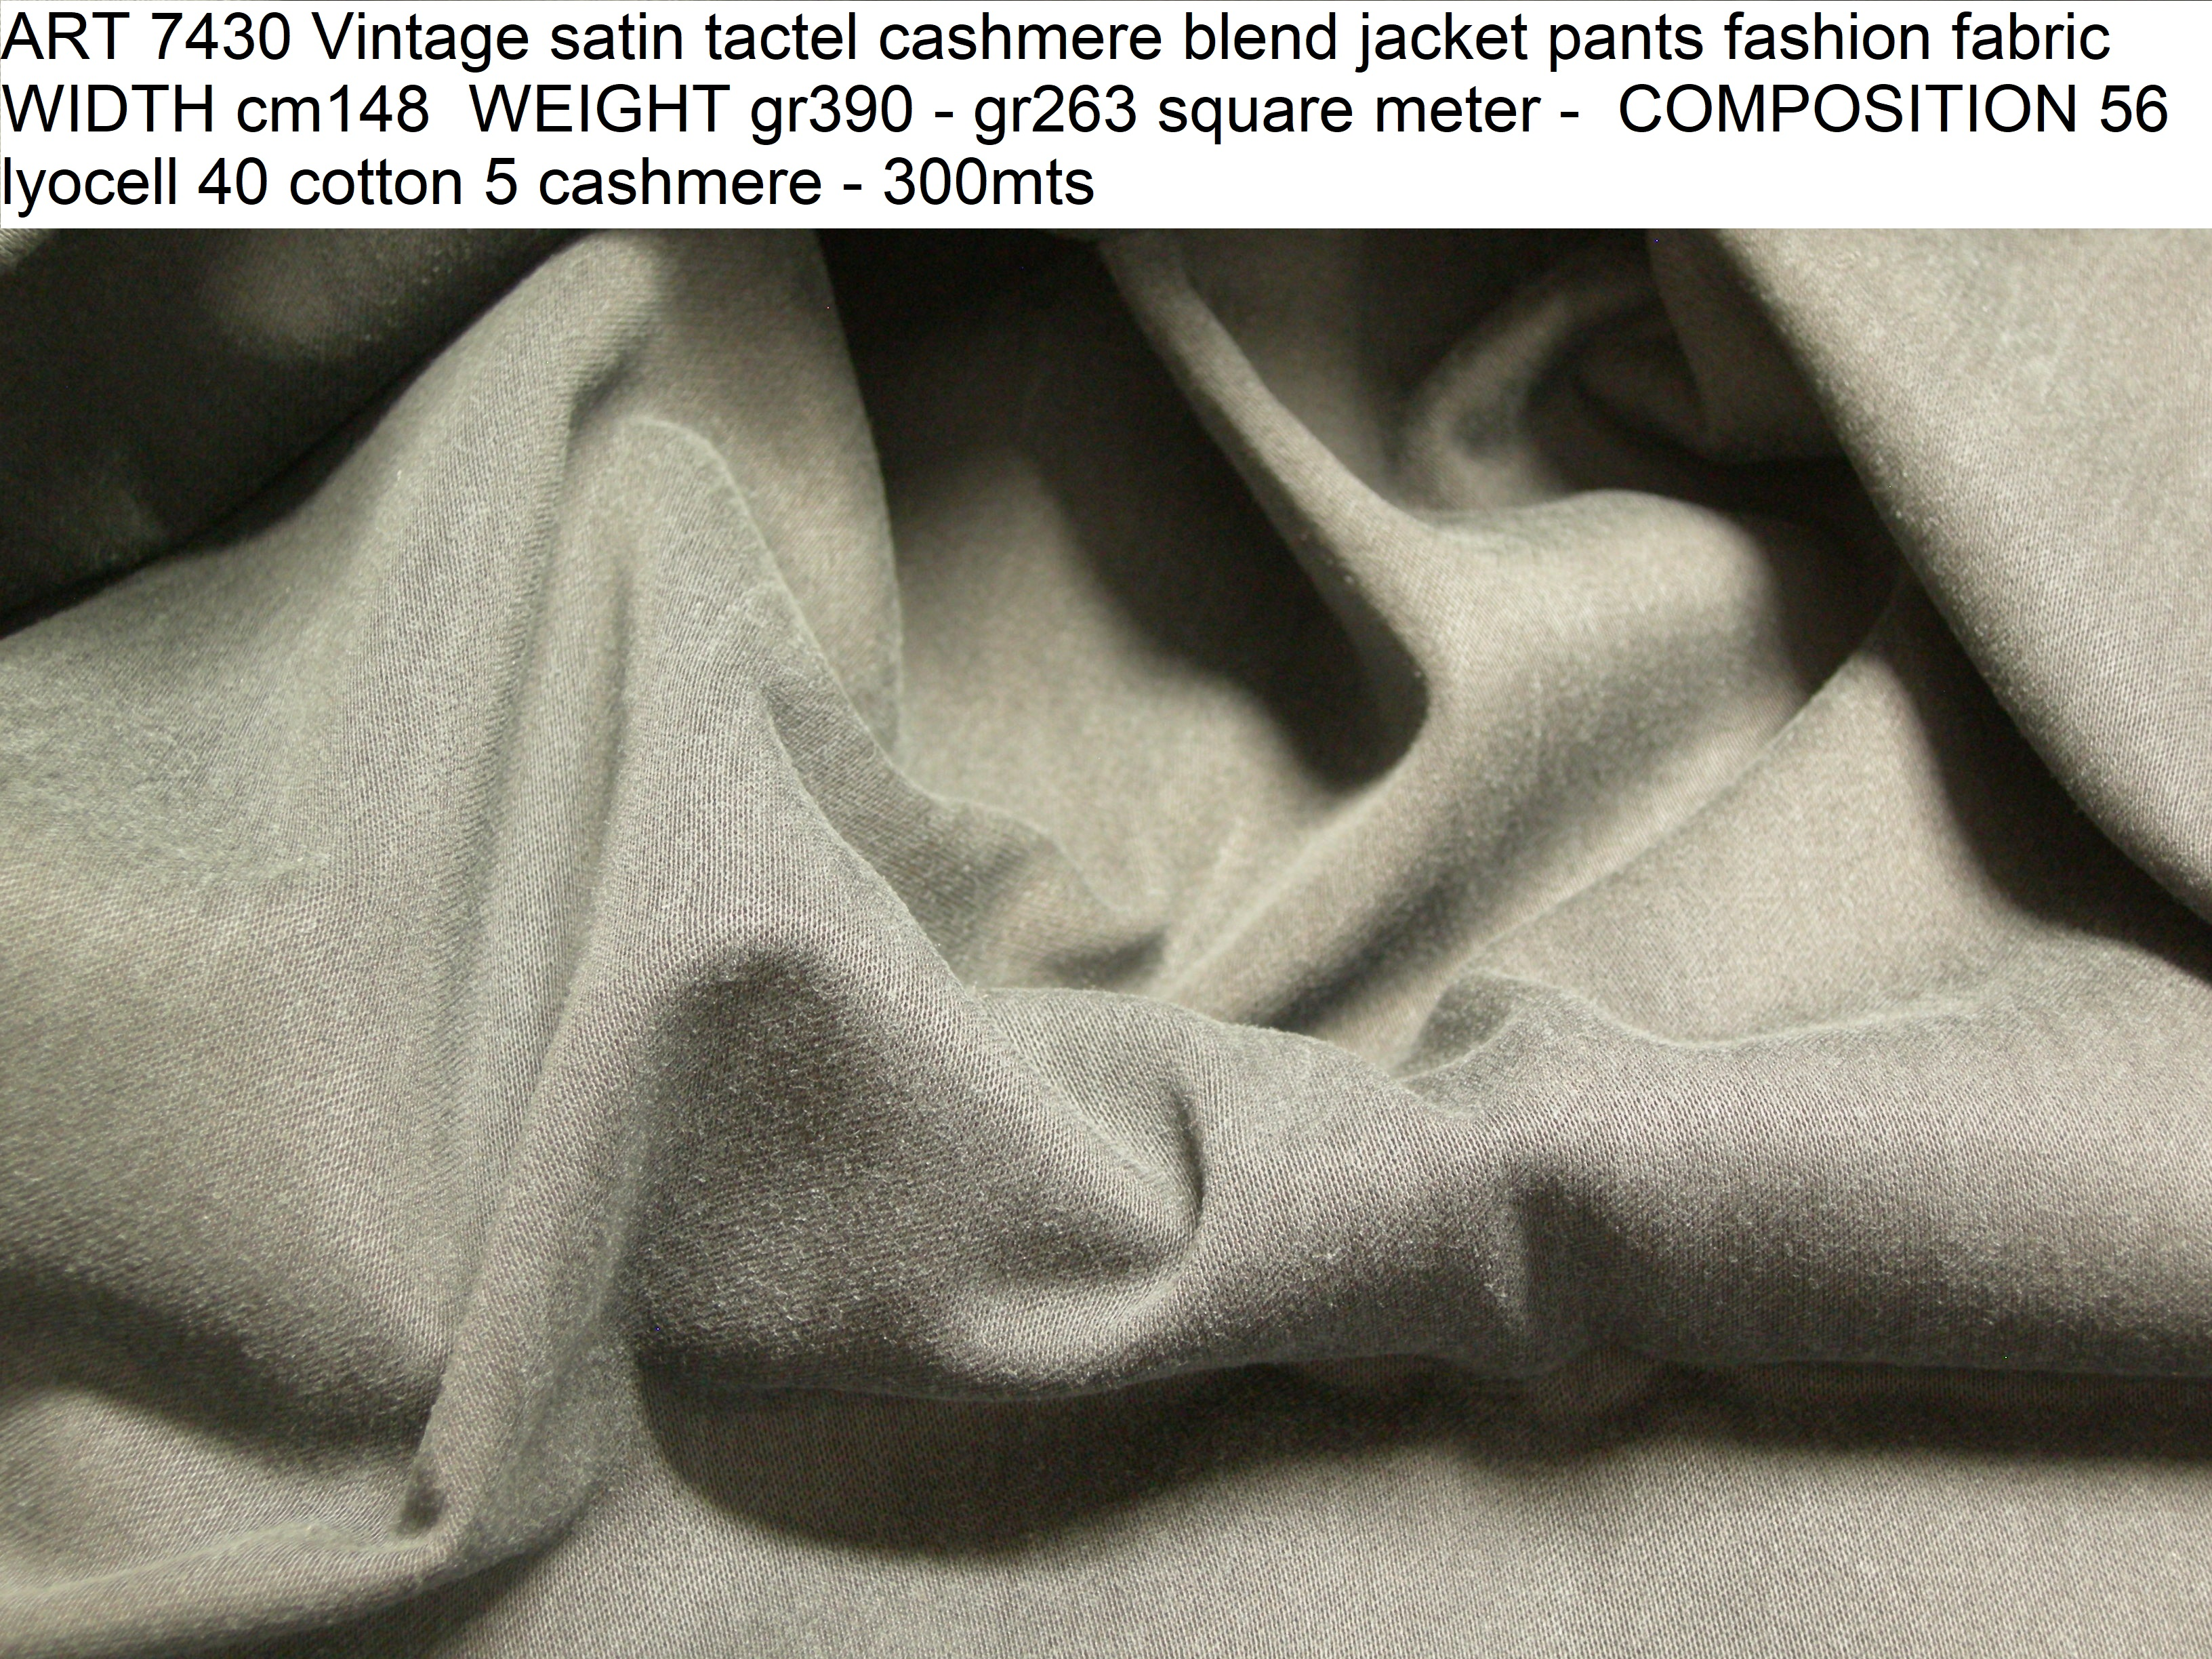 ART 7430 Vintage satin tactel cashmere blend jacket pants fashion fabric WIDTH cm148 WEIGHT gr390 - gr263 square meter - COMPOSITION 56 lyocell 40 cotton 5 cashmere - 300mts